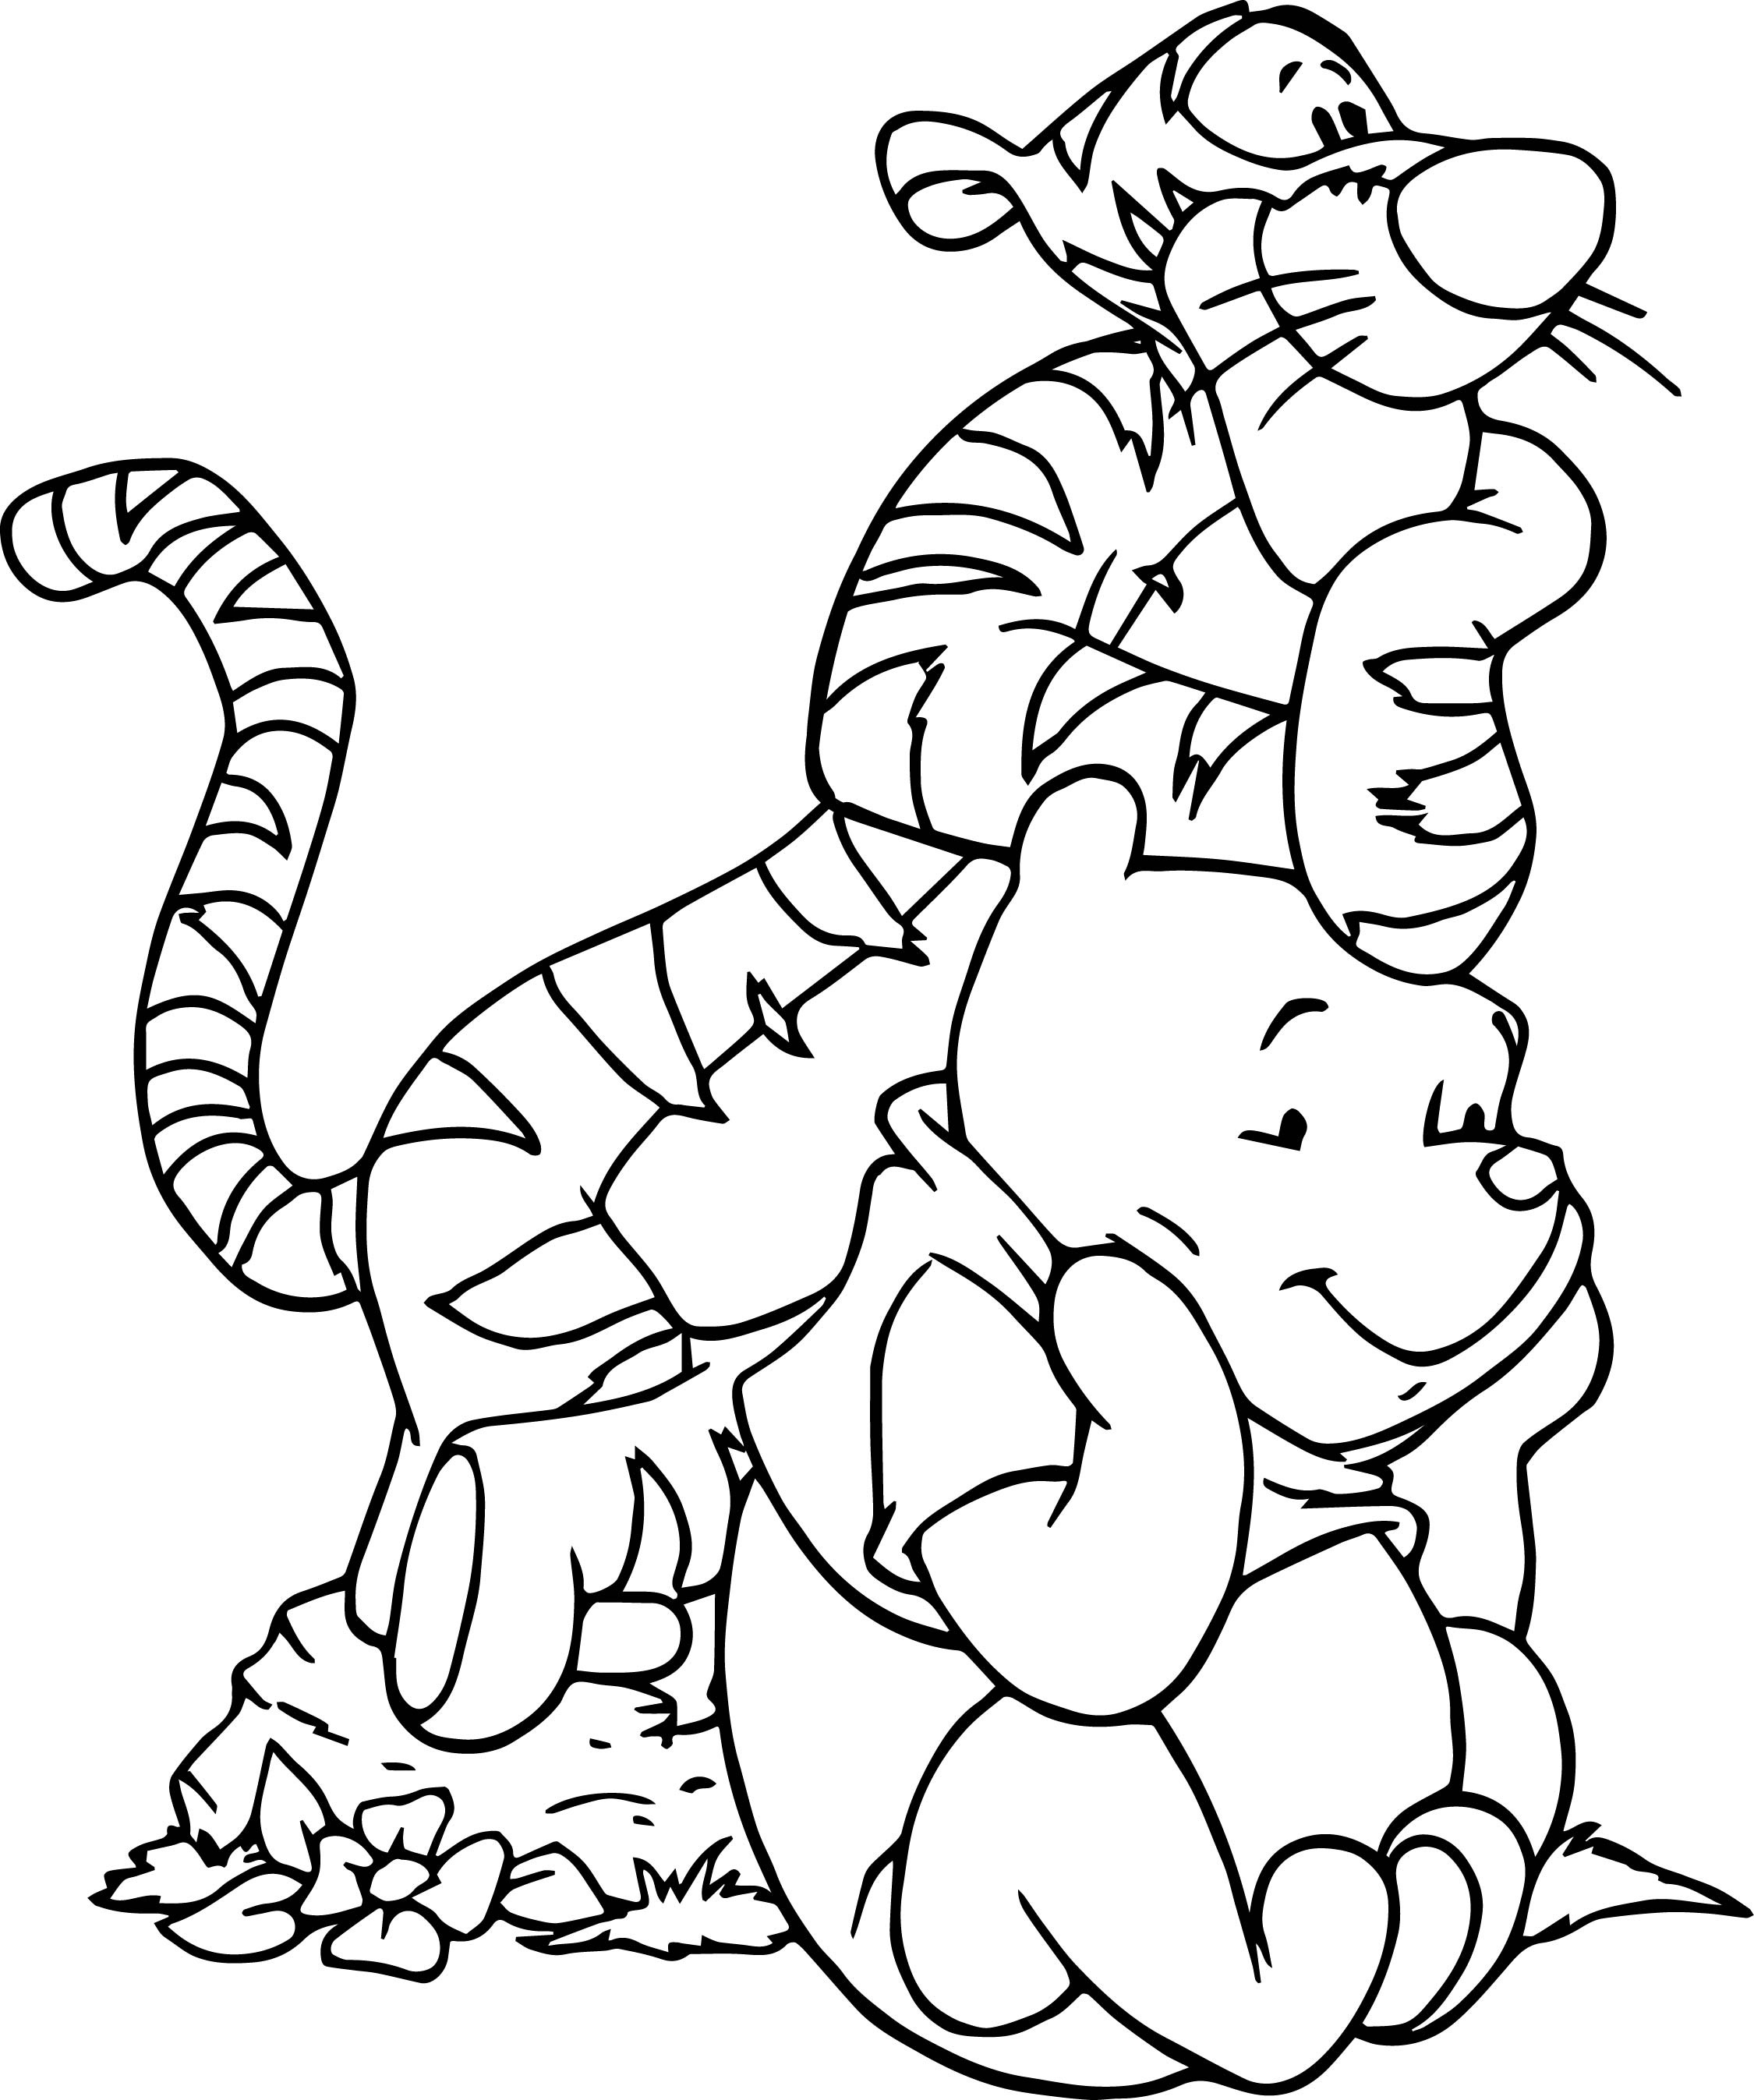 Winnie The Pooh And Tigger Together Coloring Page